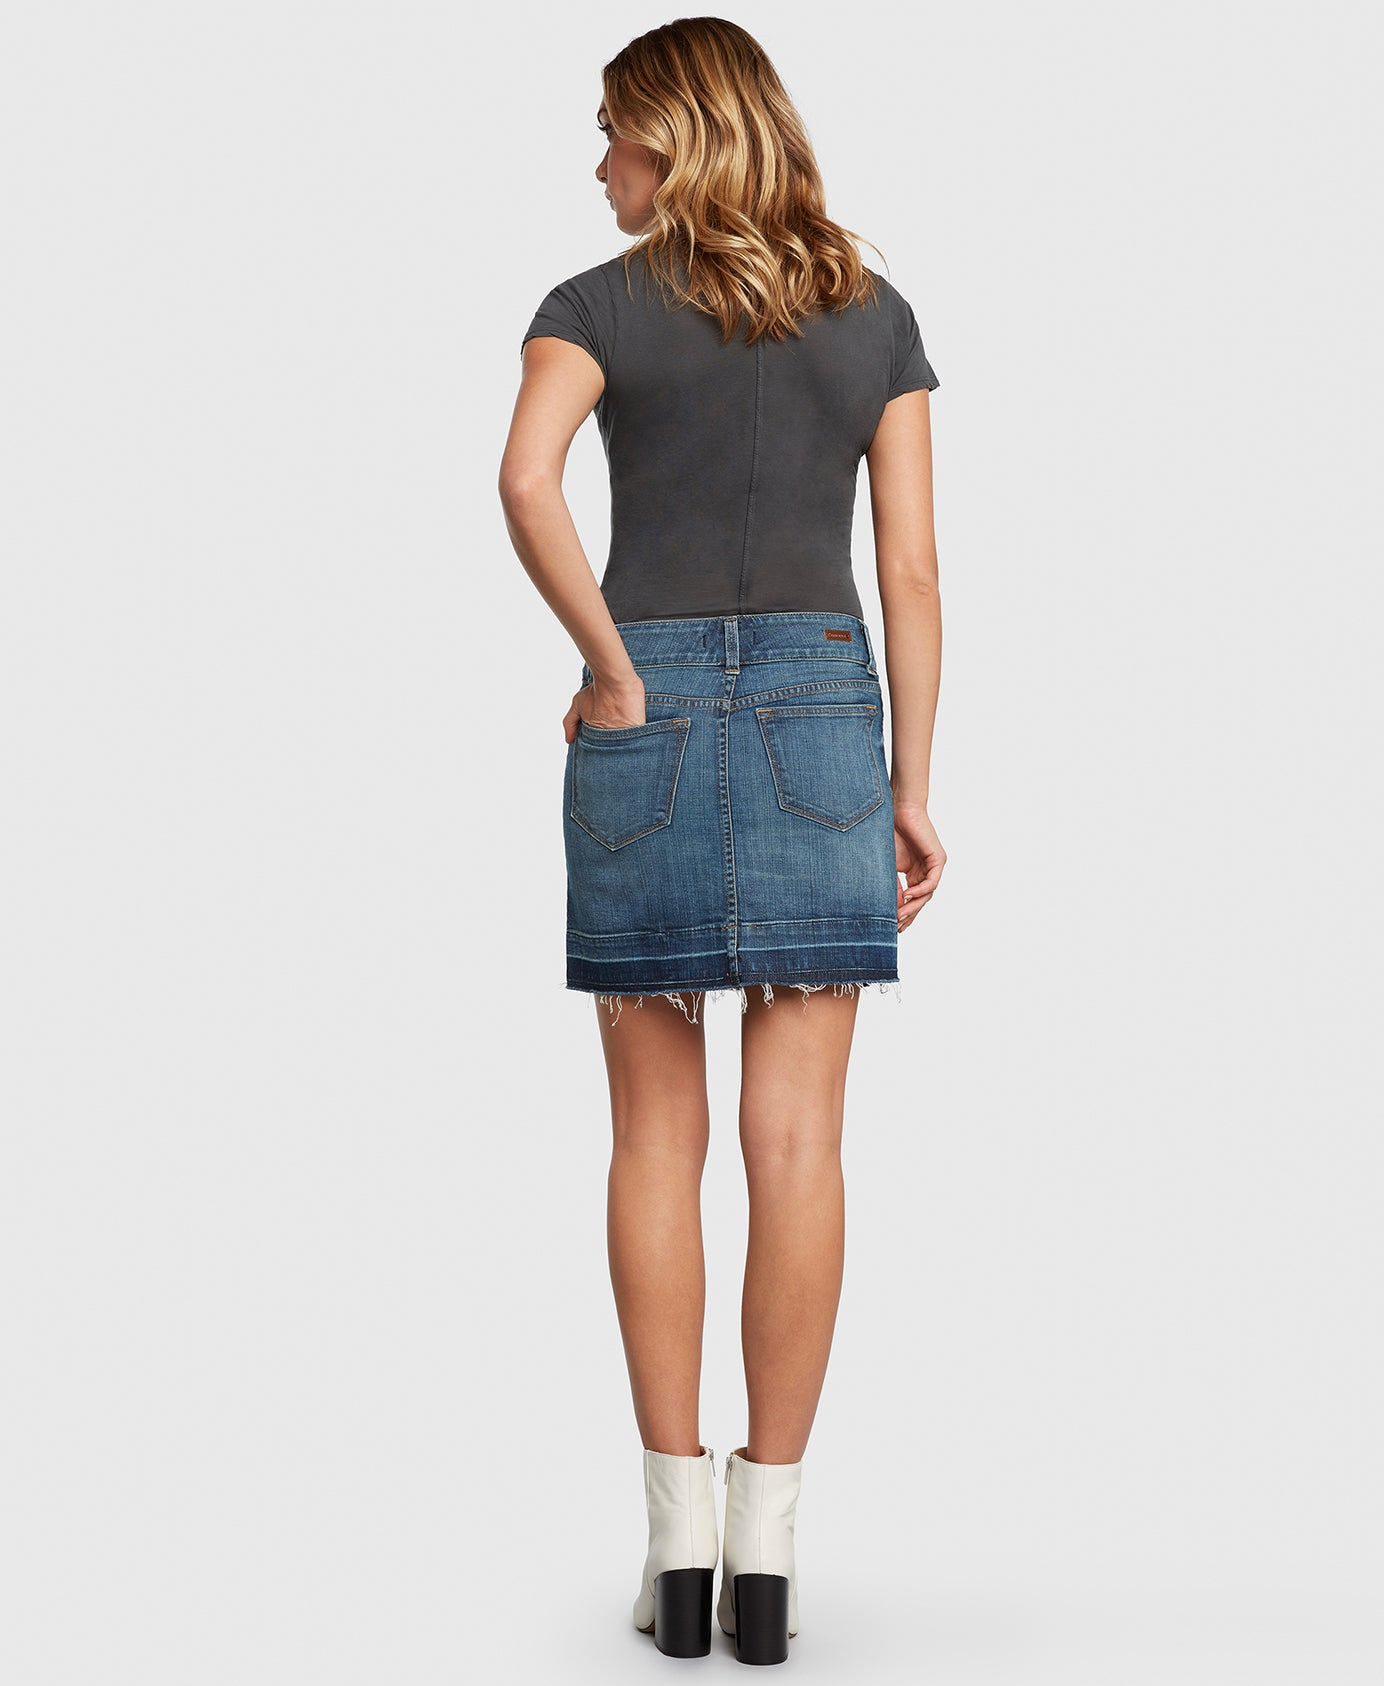 Principle denim skirt with double button waistband back